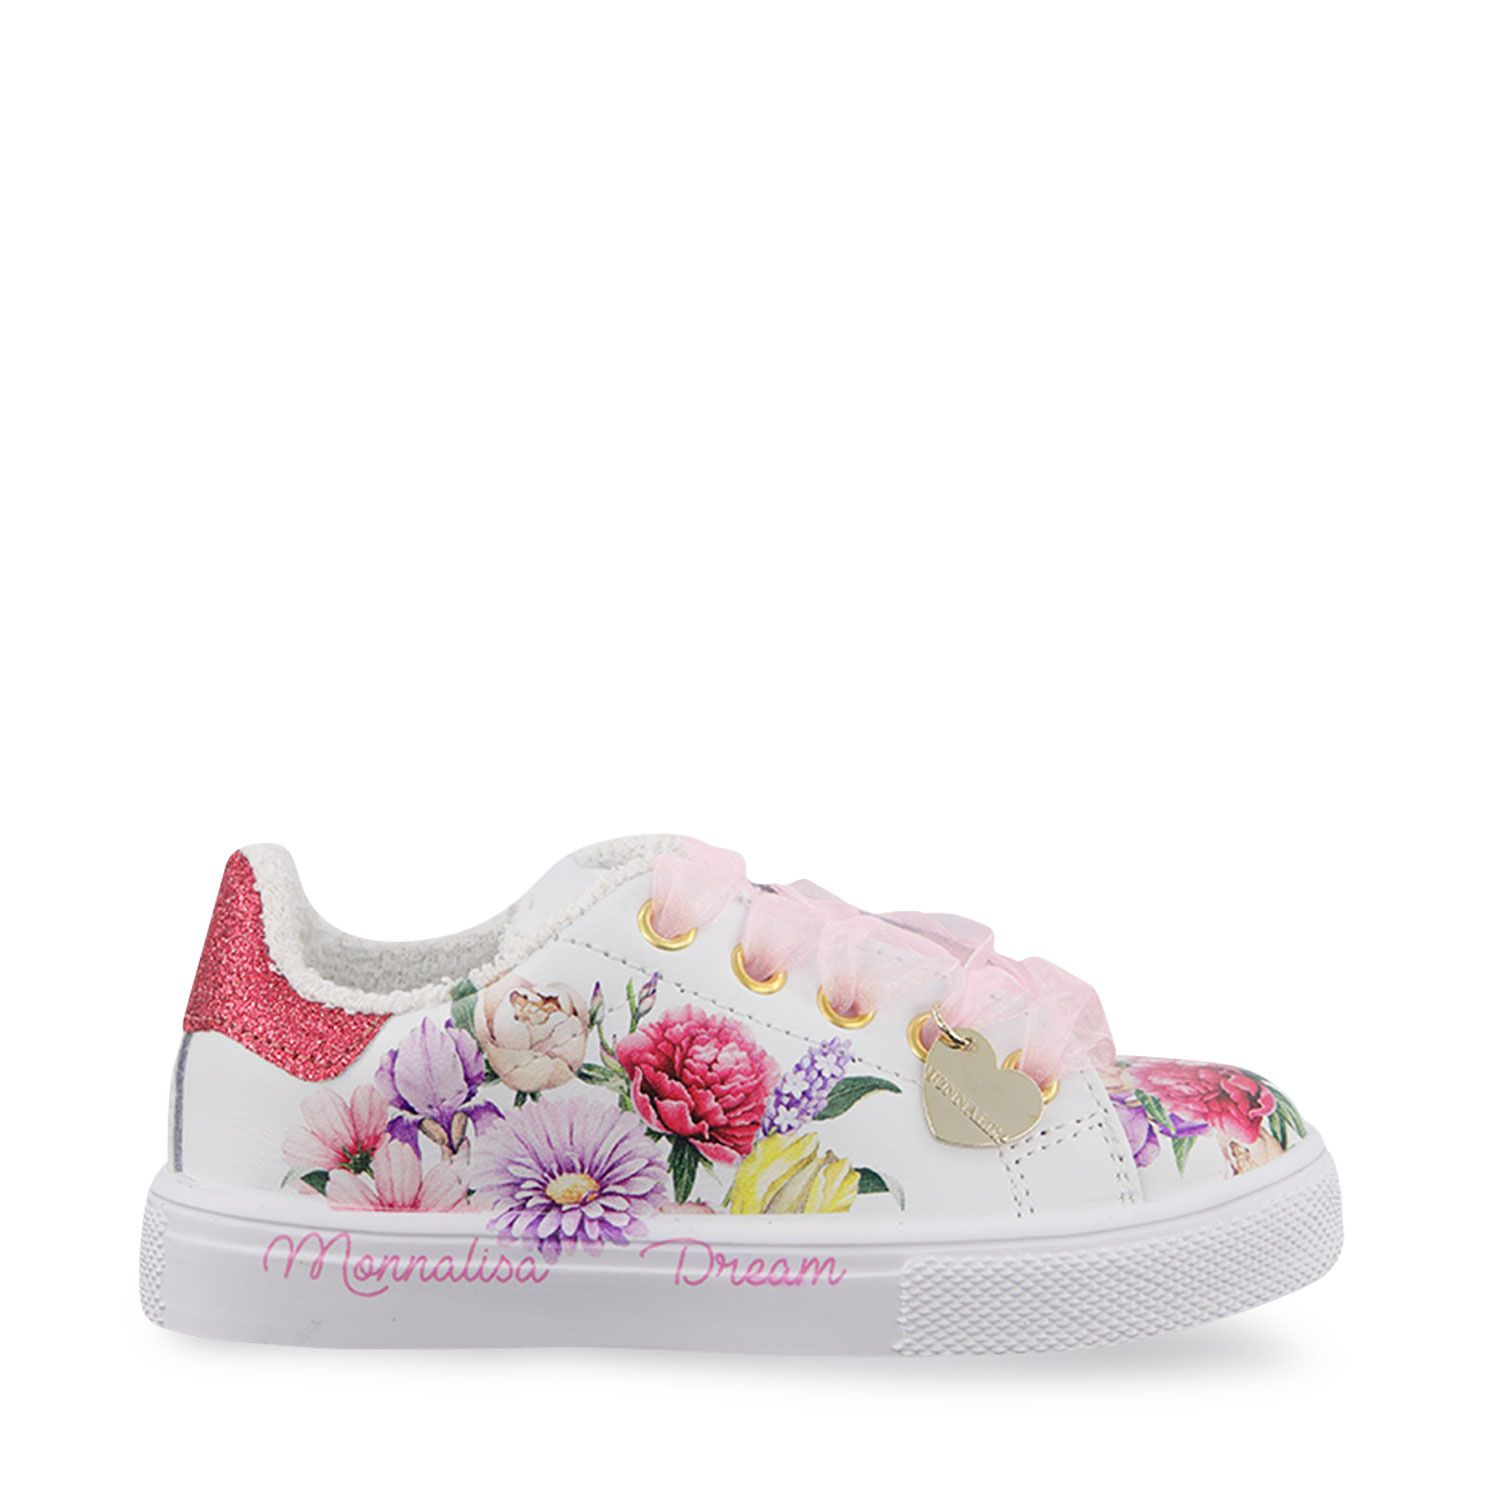 Picture of MonnaLisa 8C7000 kids sneakers white